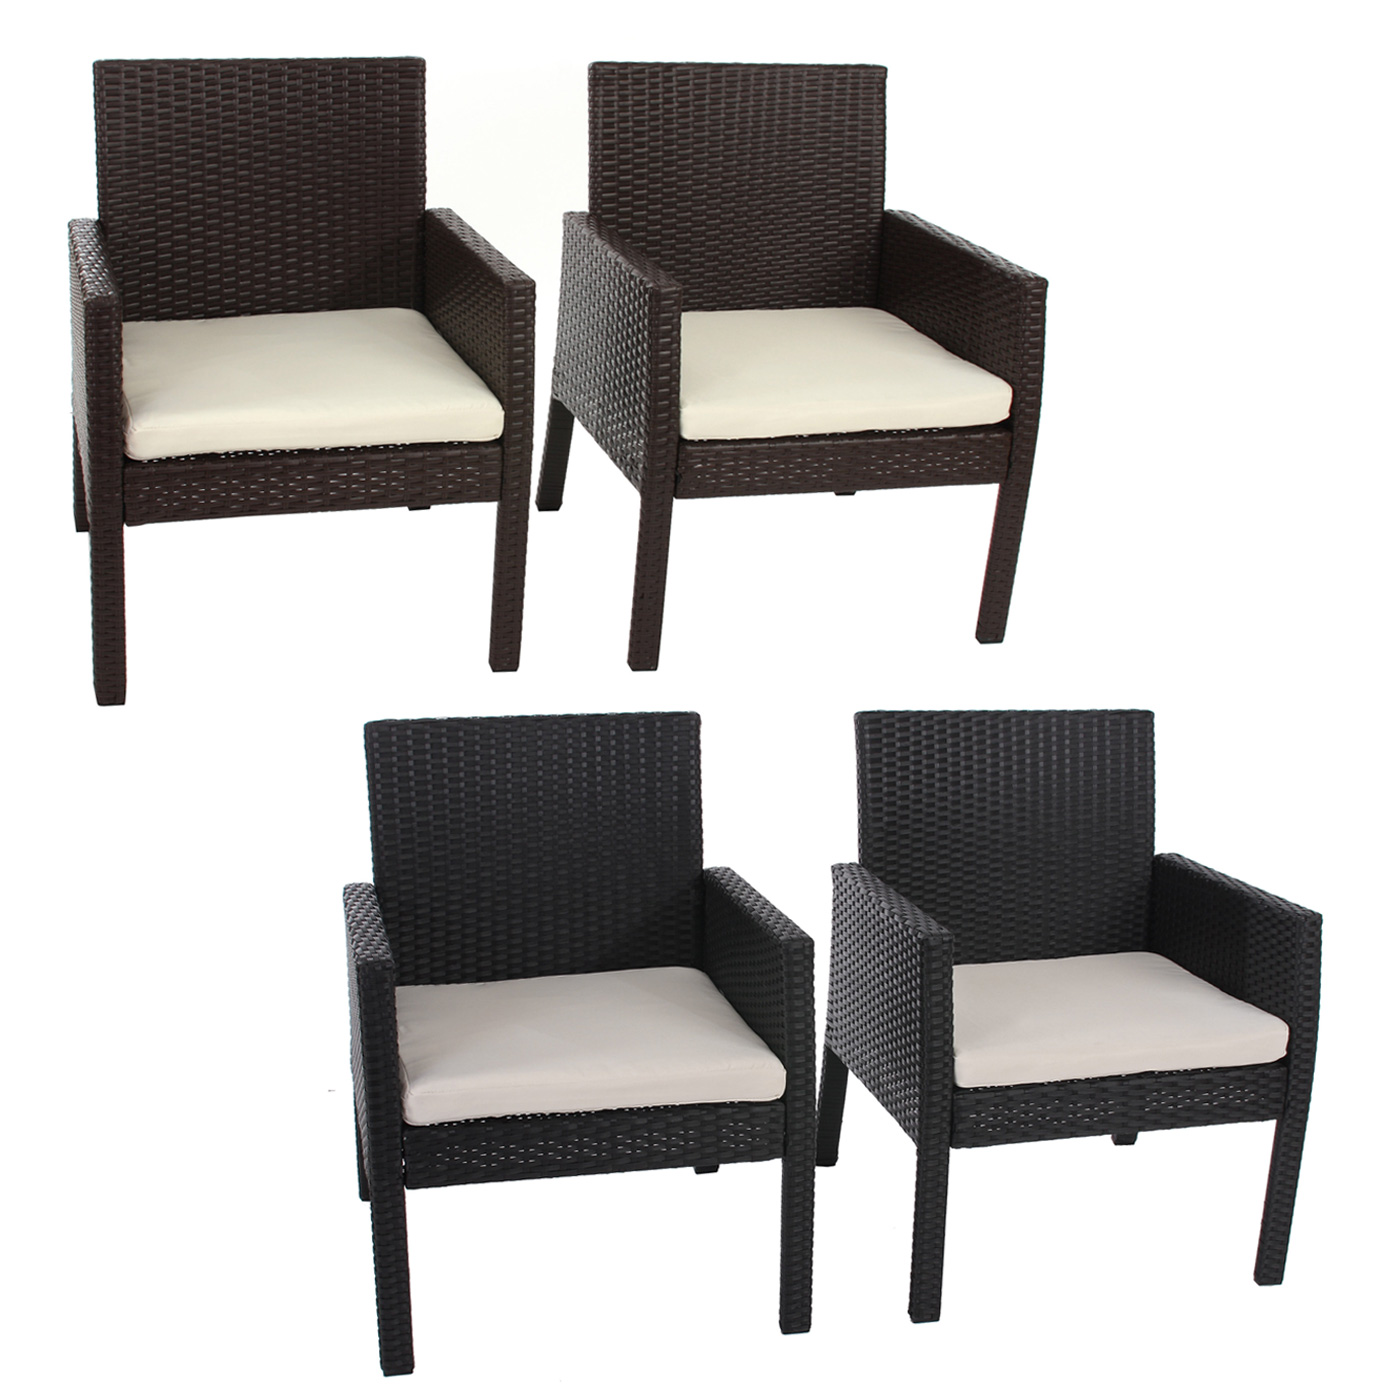 2x poly rattan sessel gartensessel sanremo inkl sitzkissen ebay. Black Bedroom Furniture Sets. Home Design Ideas